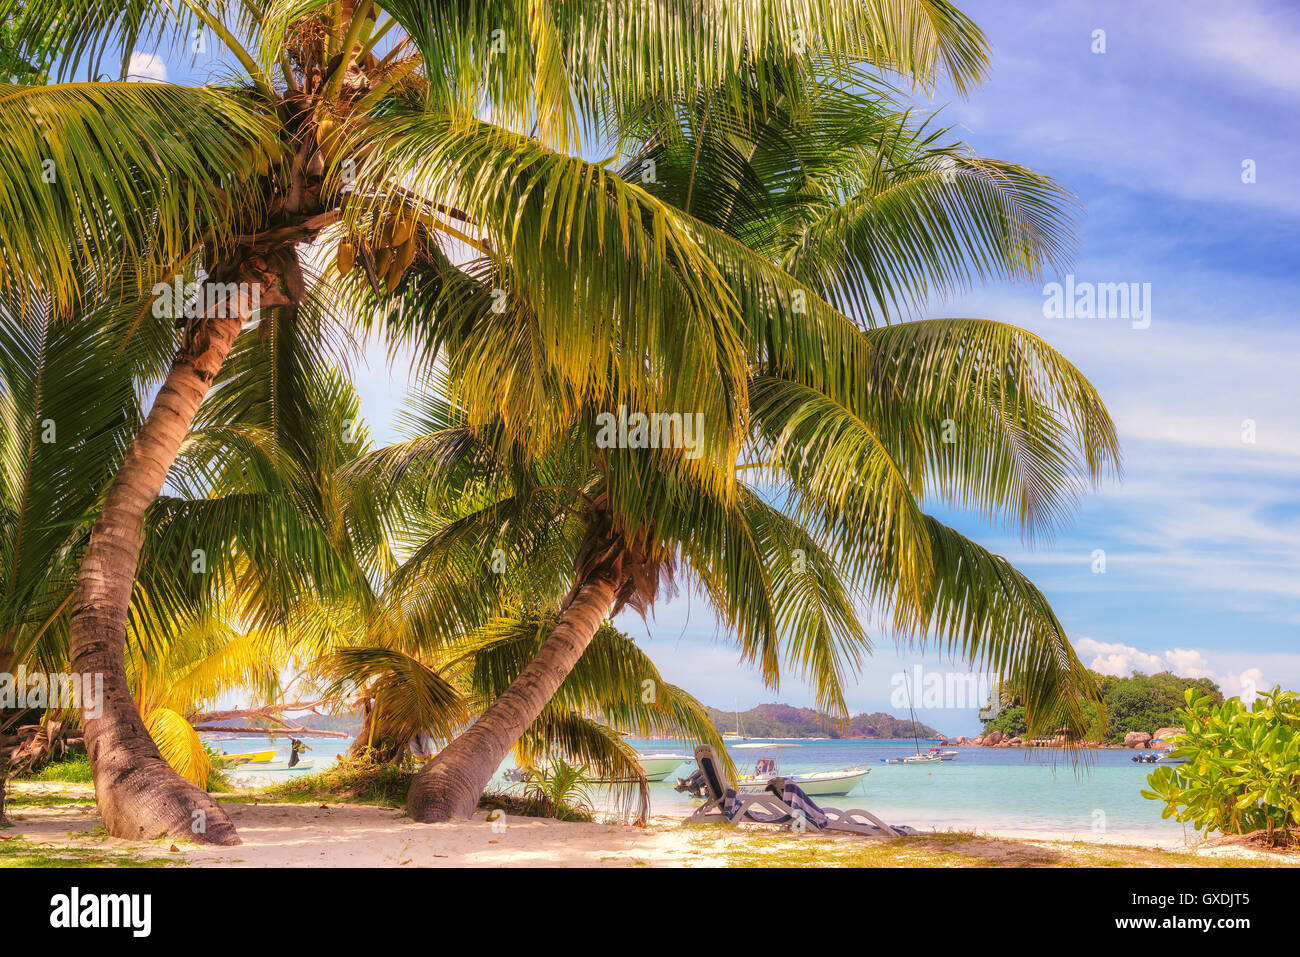 Beach on the tropical island. - Stock Image